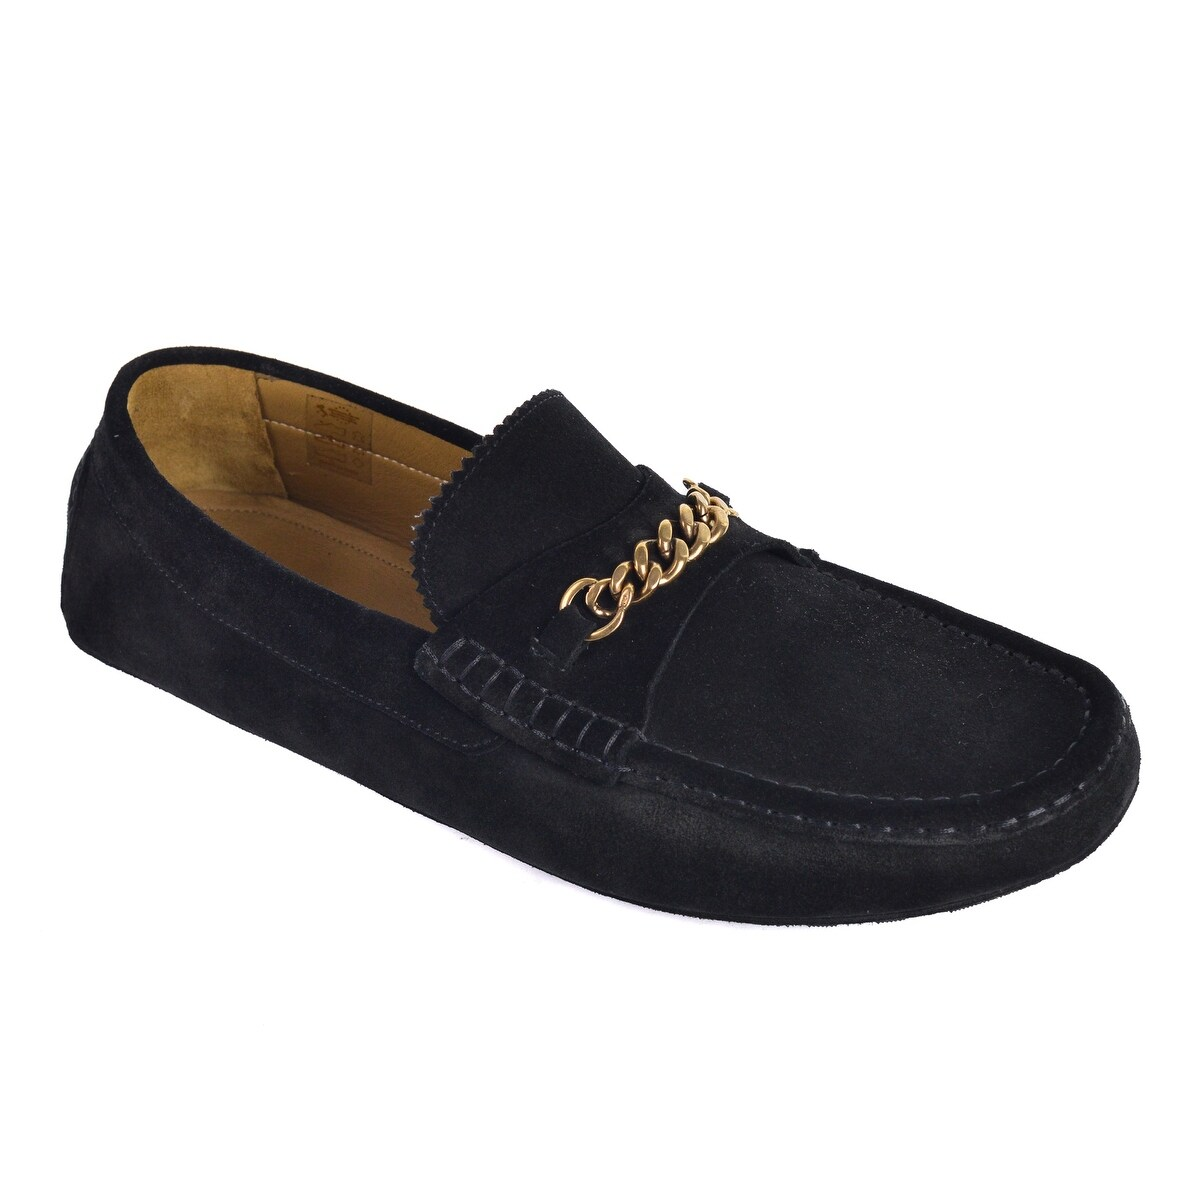 c1a6e839e83 Shop Tom Ford Mens Black Suede York Chain Driver Loafers - Free Shipping  Today - Overstock - 26397615